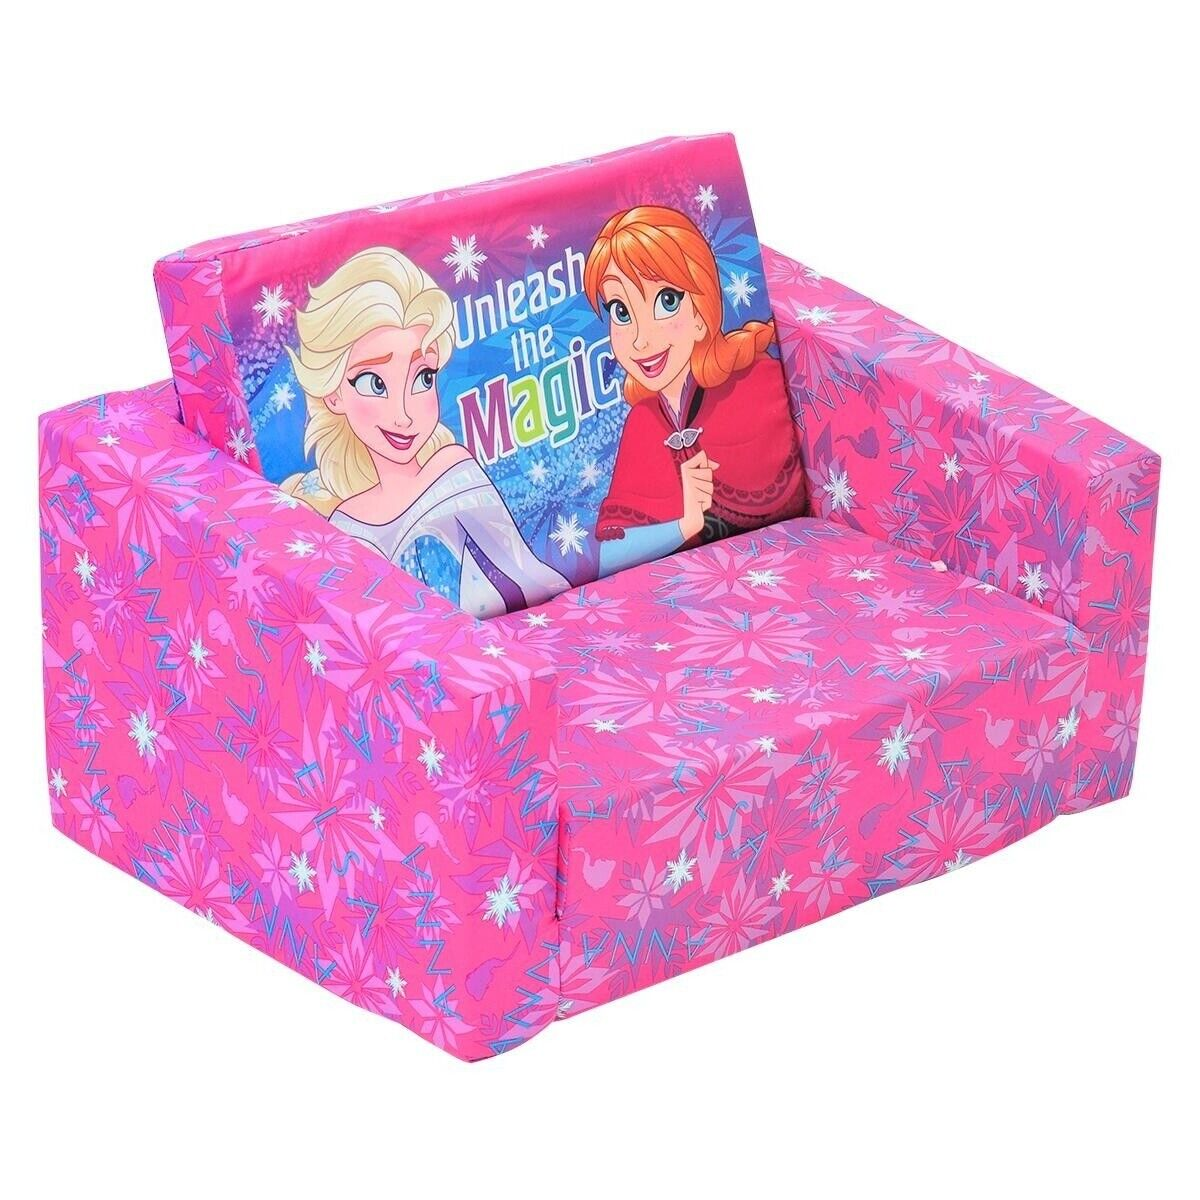 Sensational Details About New Disney Frozen Kids Flip Out Sofa Bed Lounge Bedrom Decoration Birthday Gift Gmtry Best Dining Table And Chair Ideas Images Gmtryco